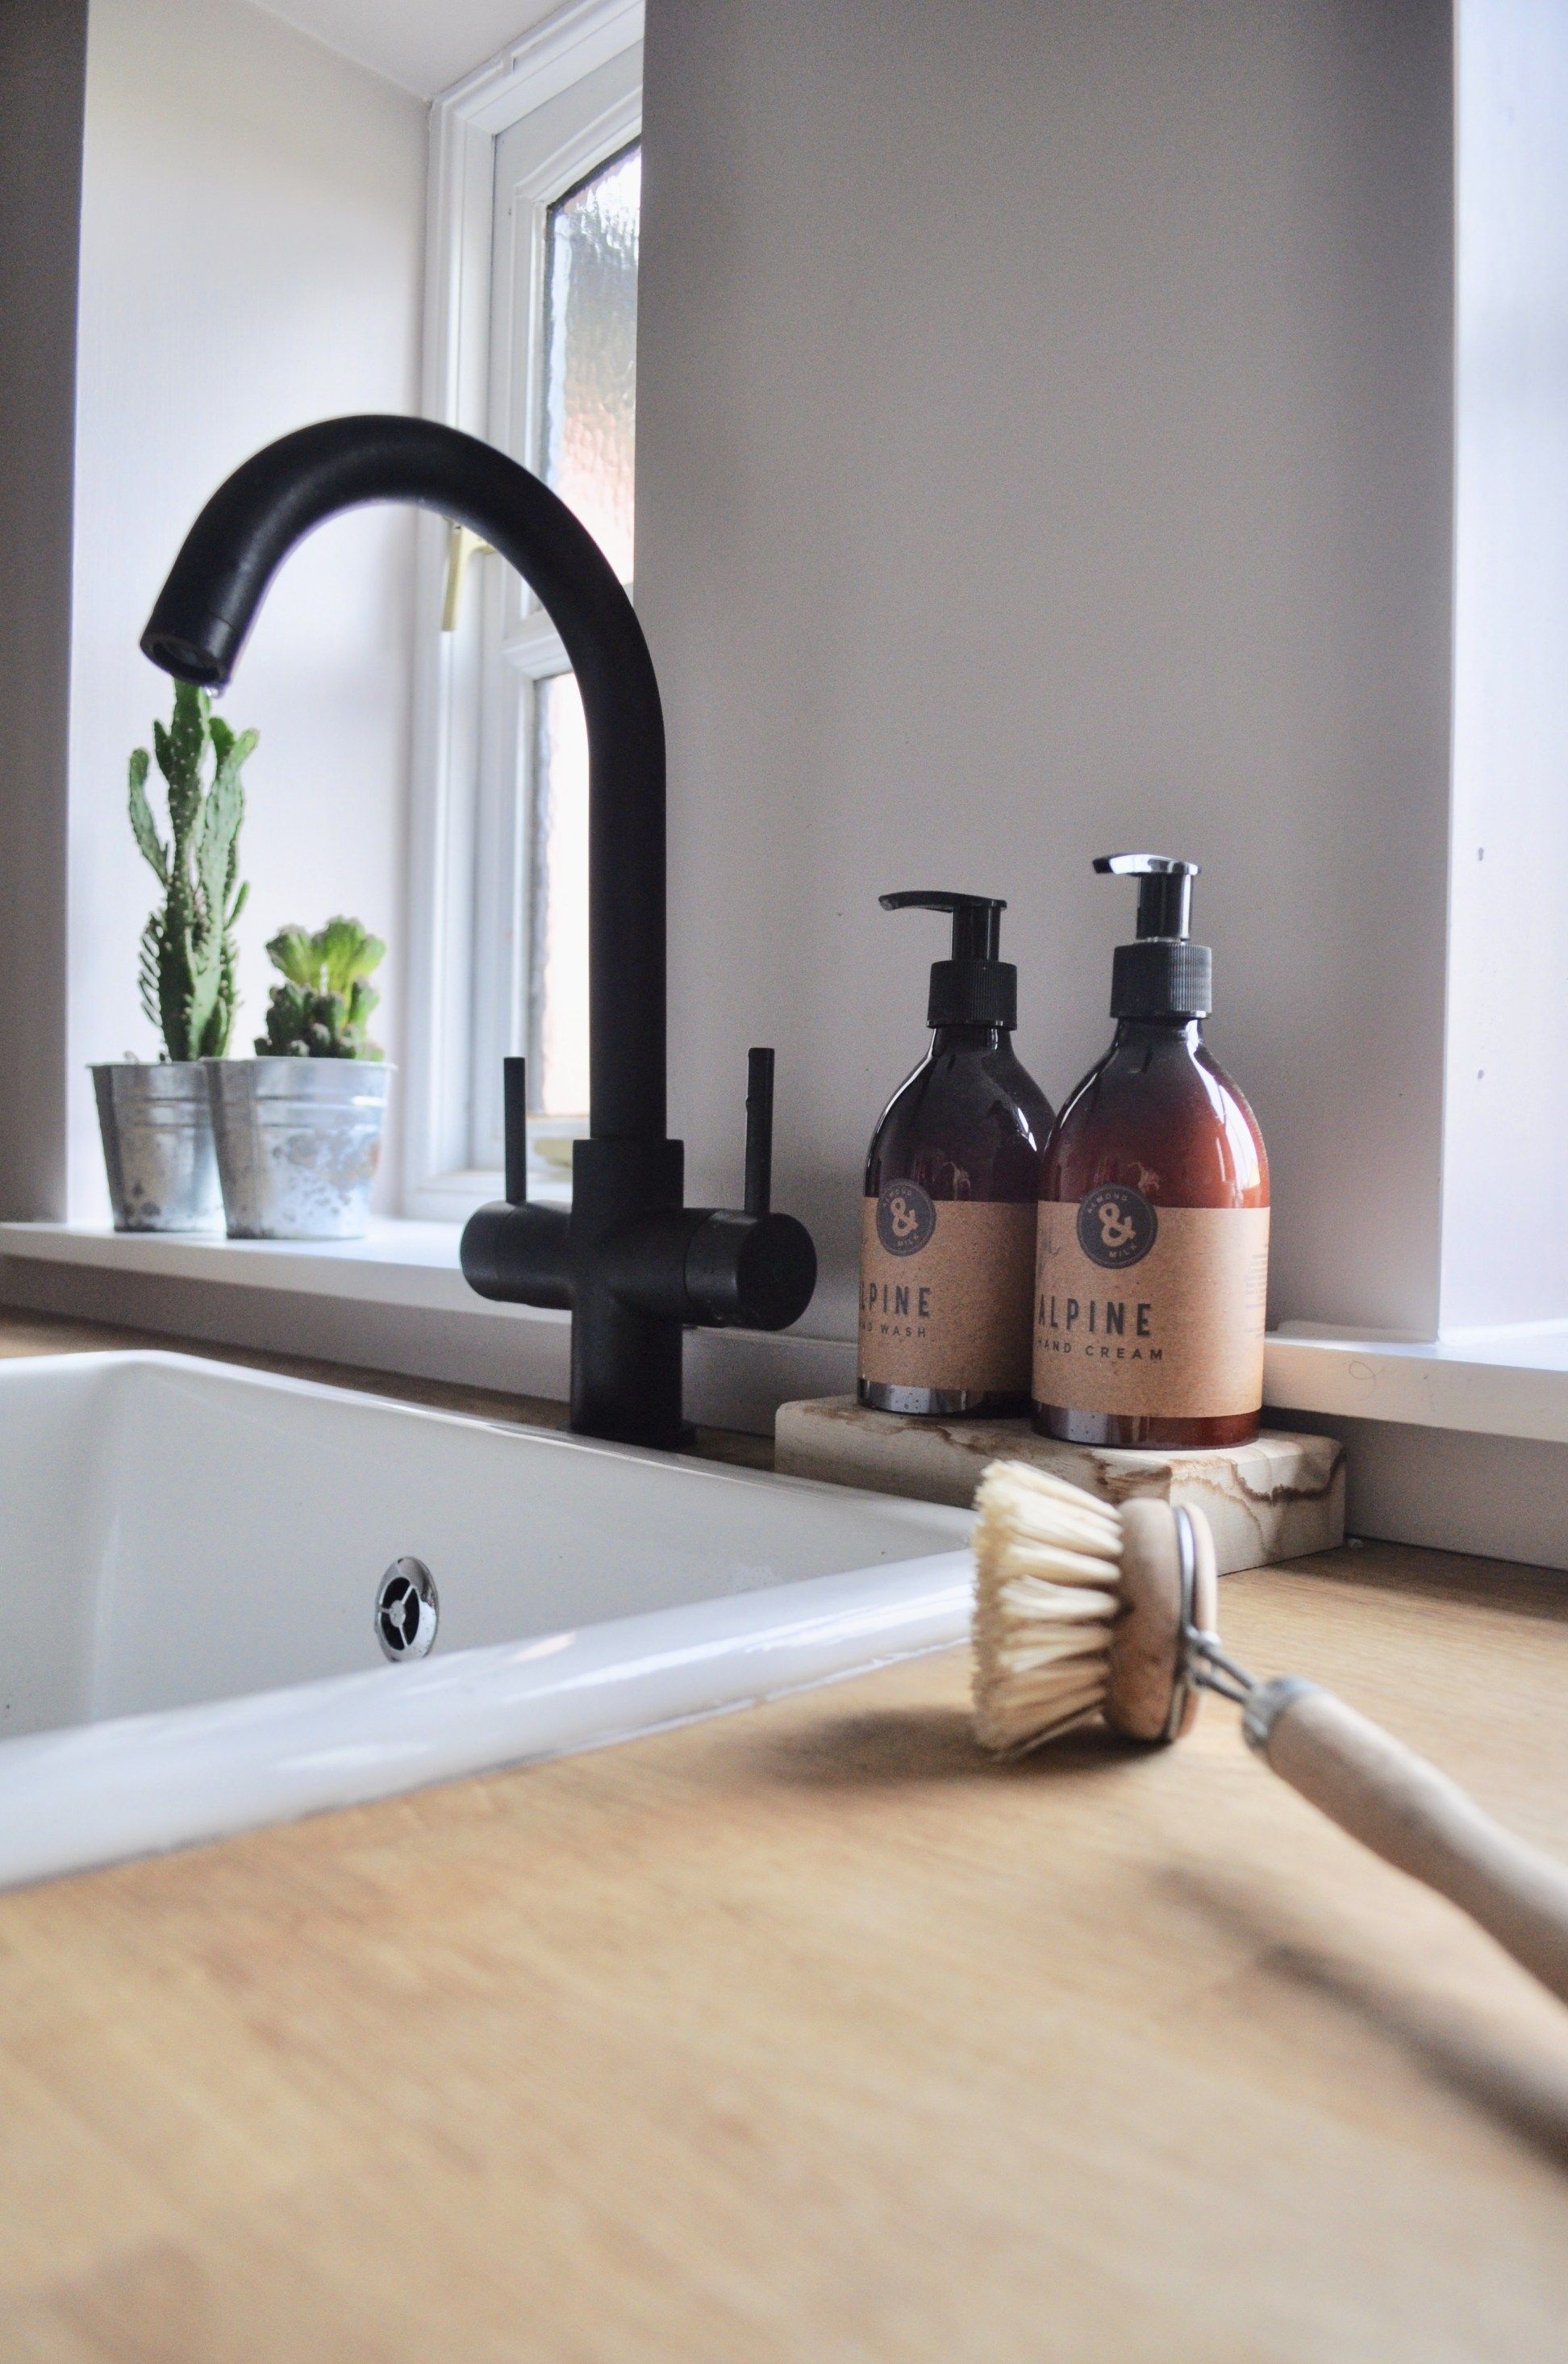 Utility Room Makeover | Taps, Sinks and Room